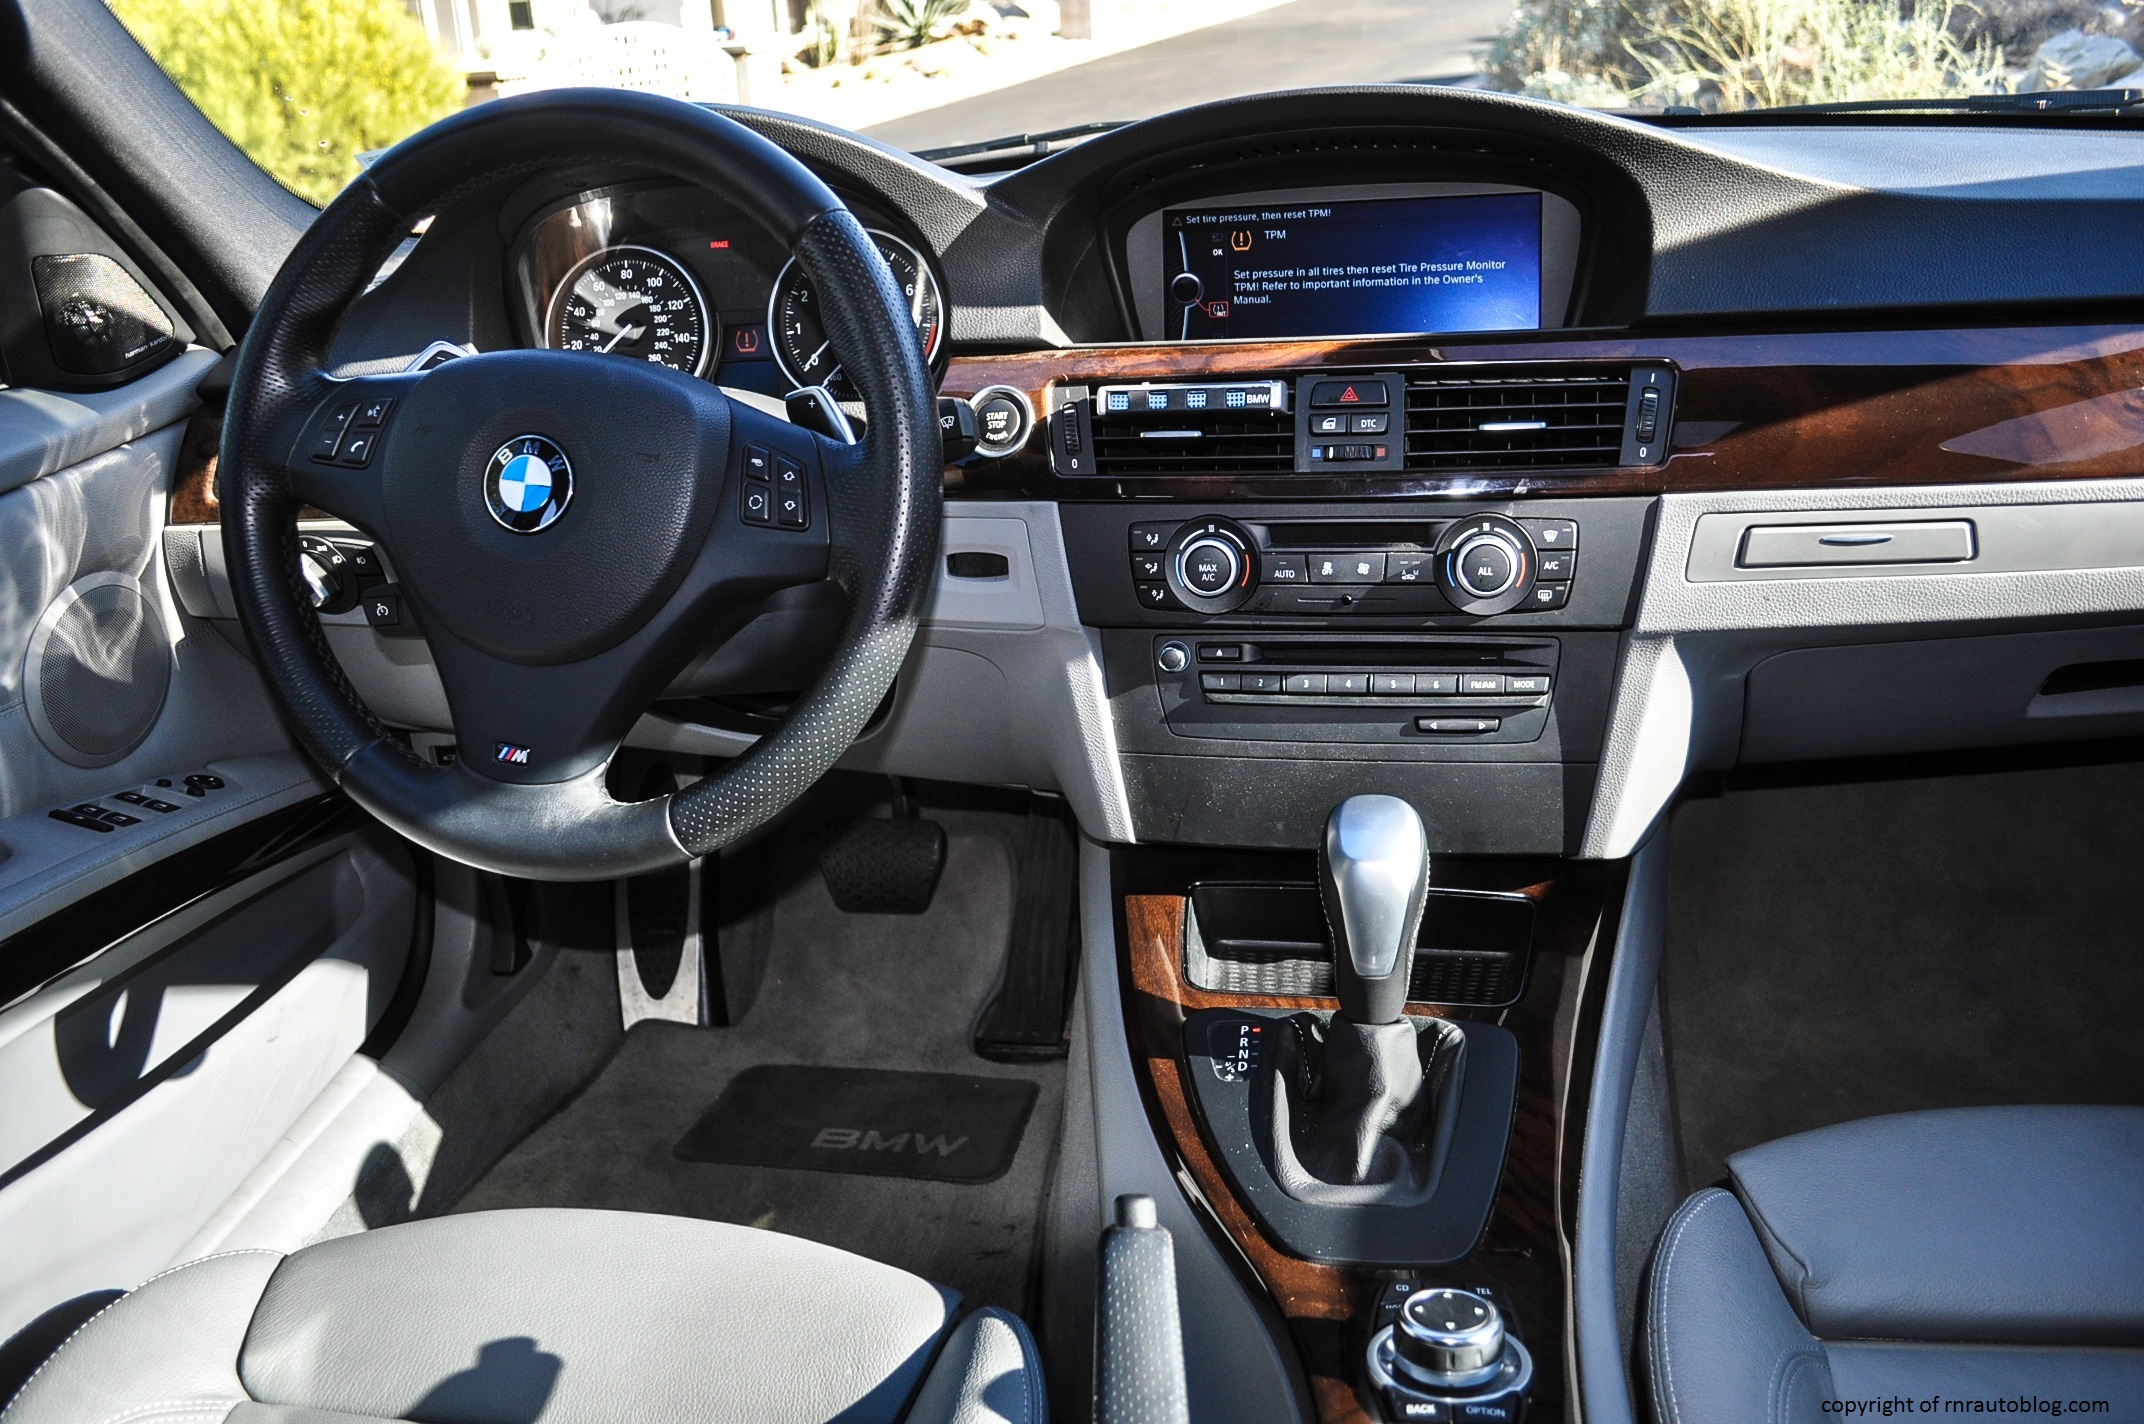 2010 Bmw 328i Interior Trim